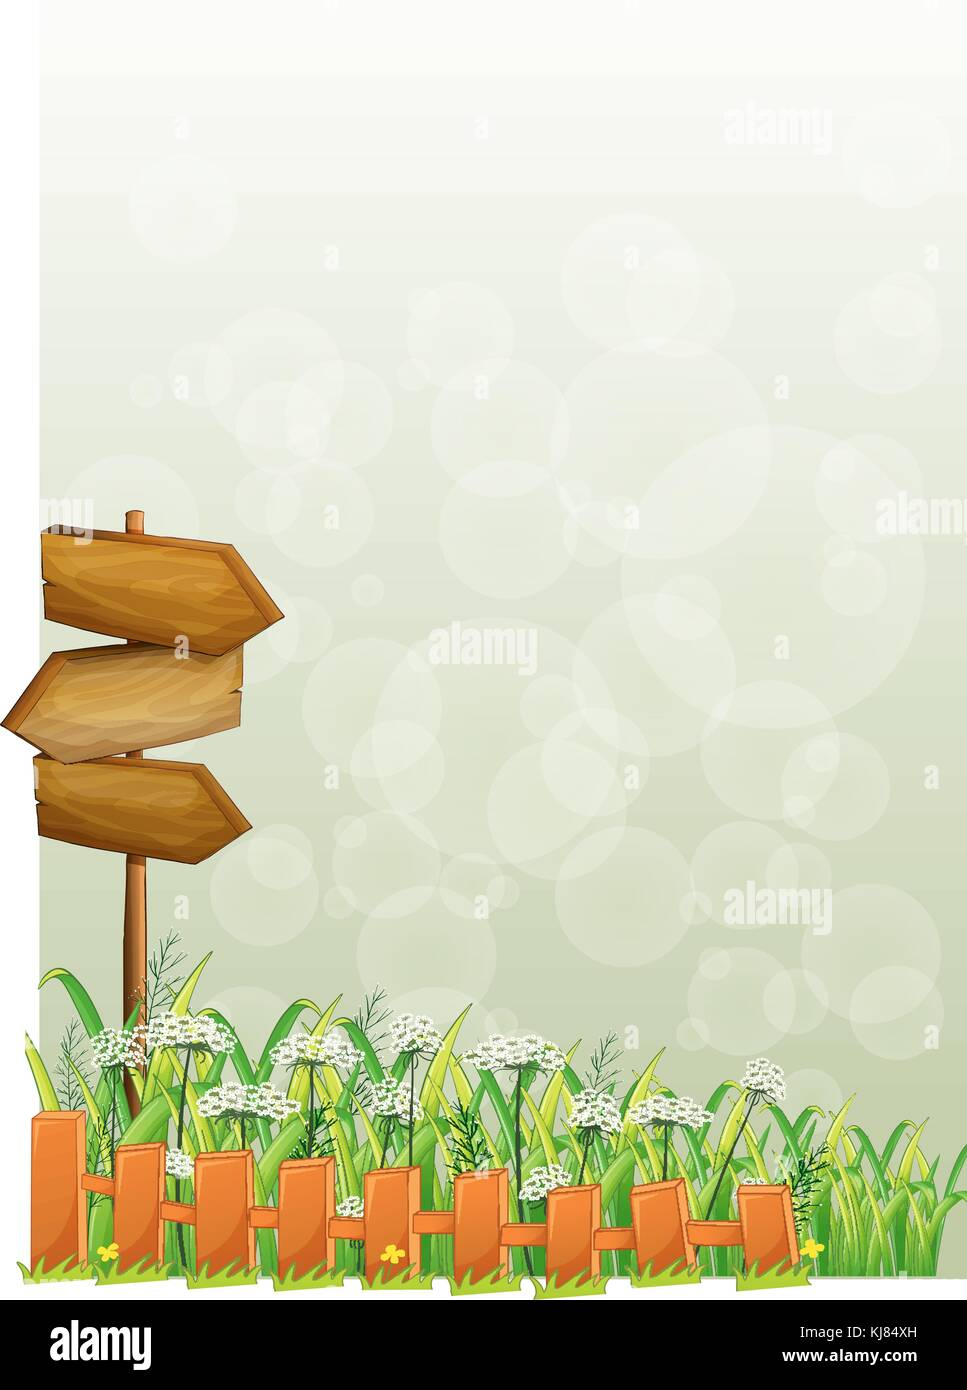 Illustration of a stationery with wooden arrows and fence on a white background - Stock Vector